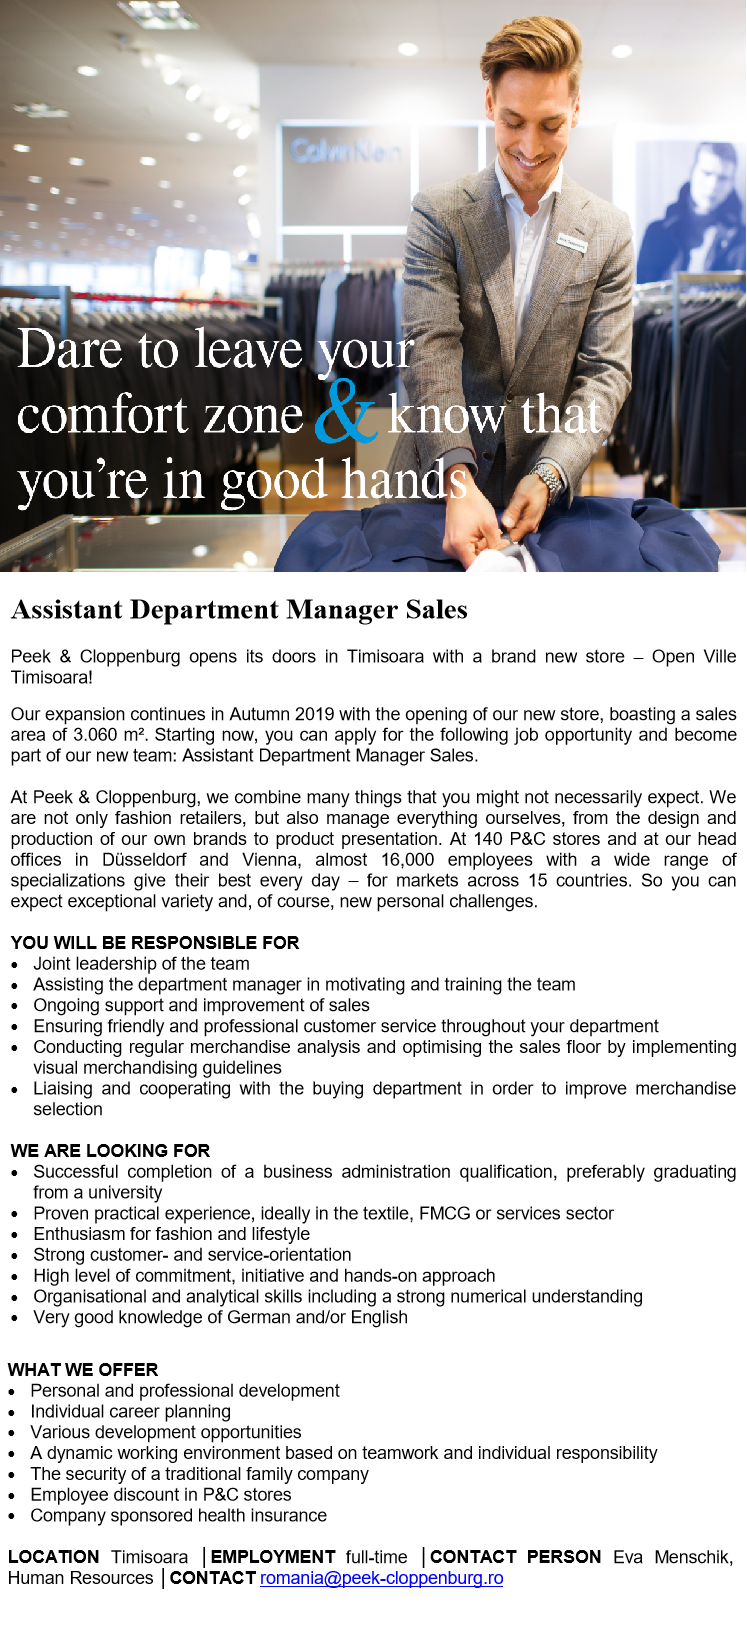 Assistant Department Manager Sales 